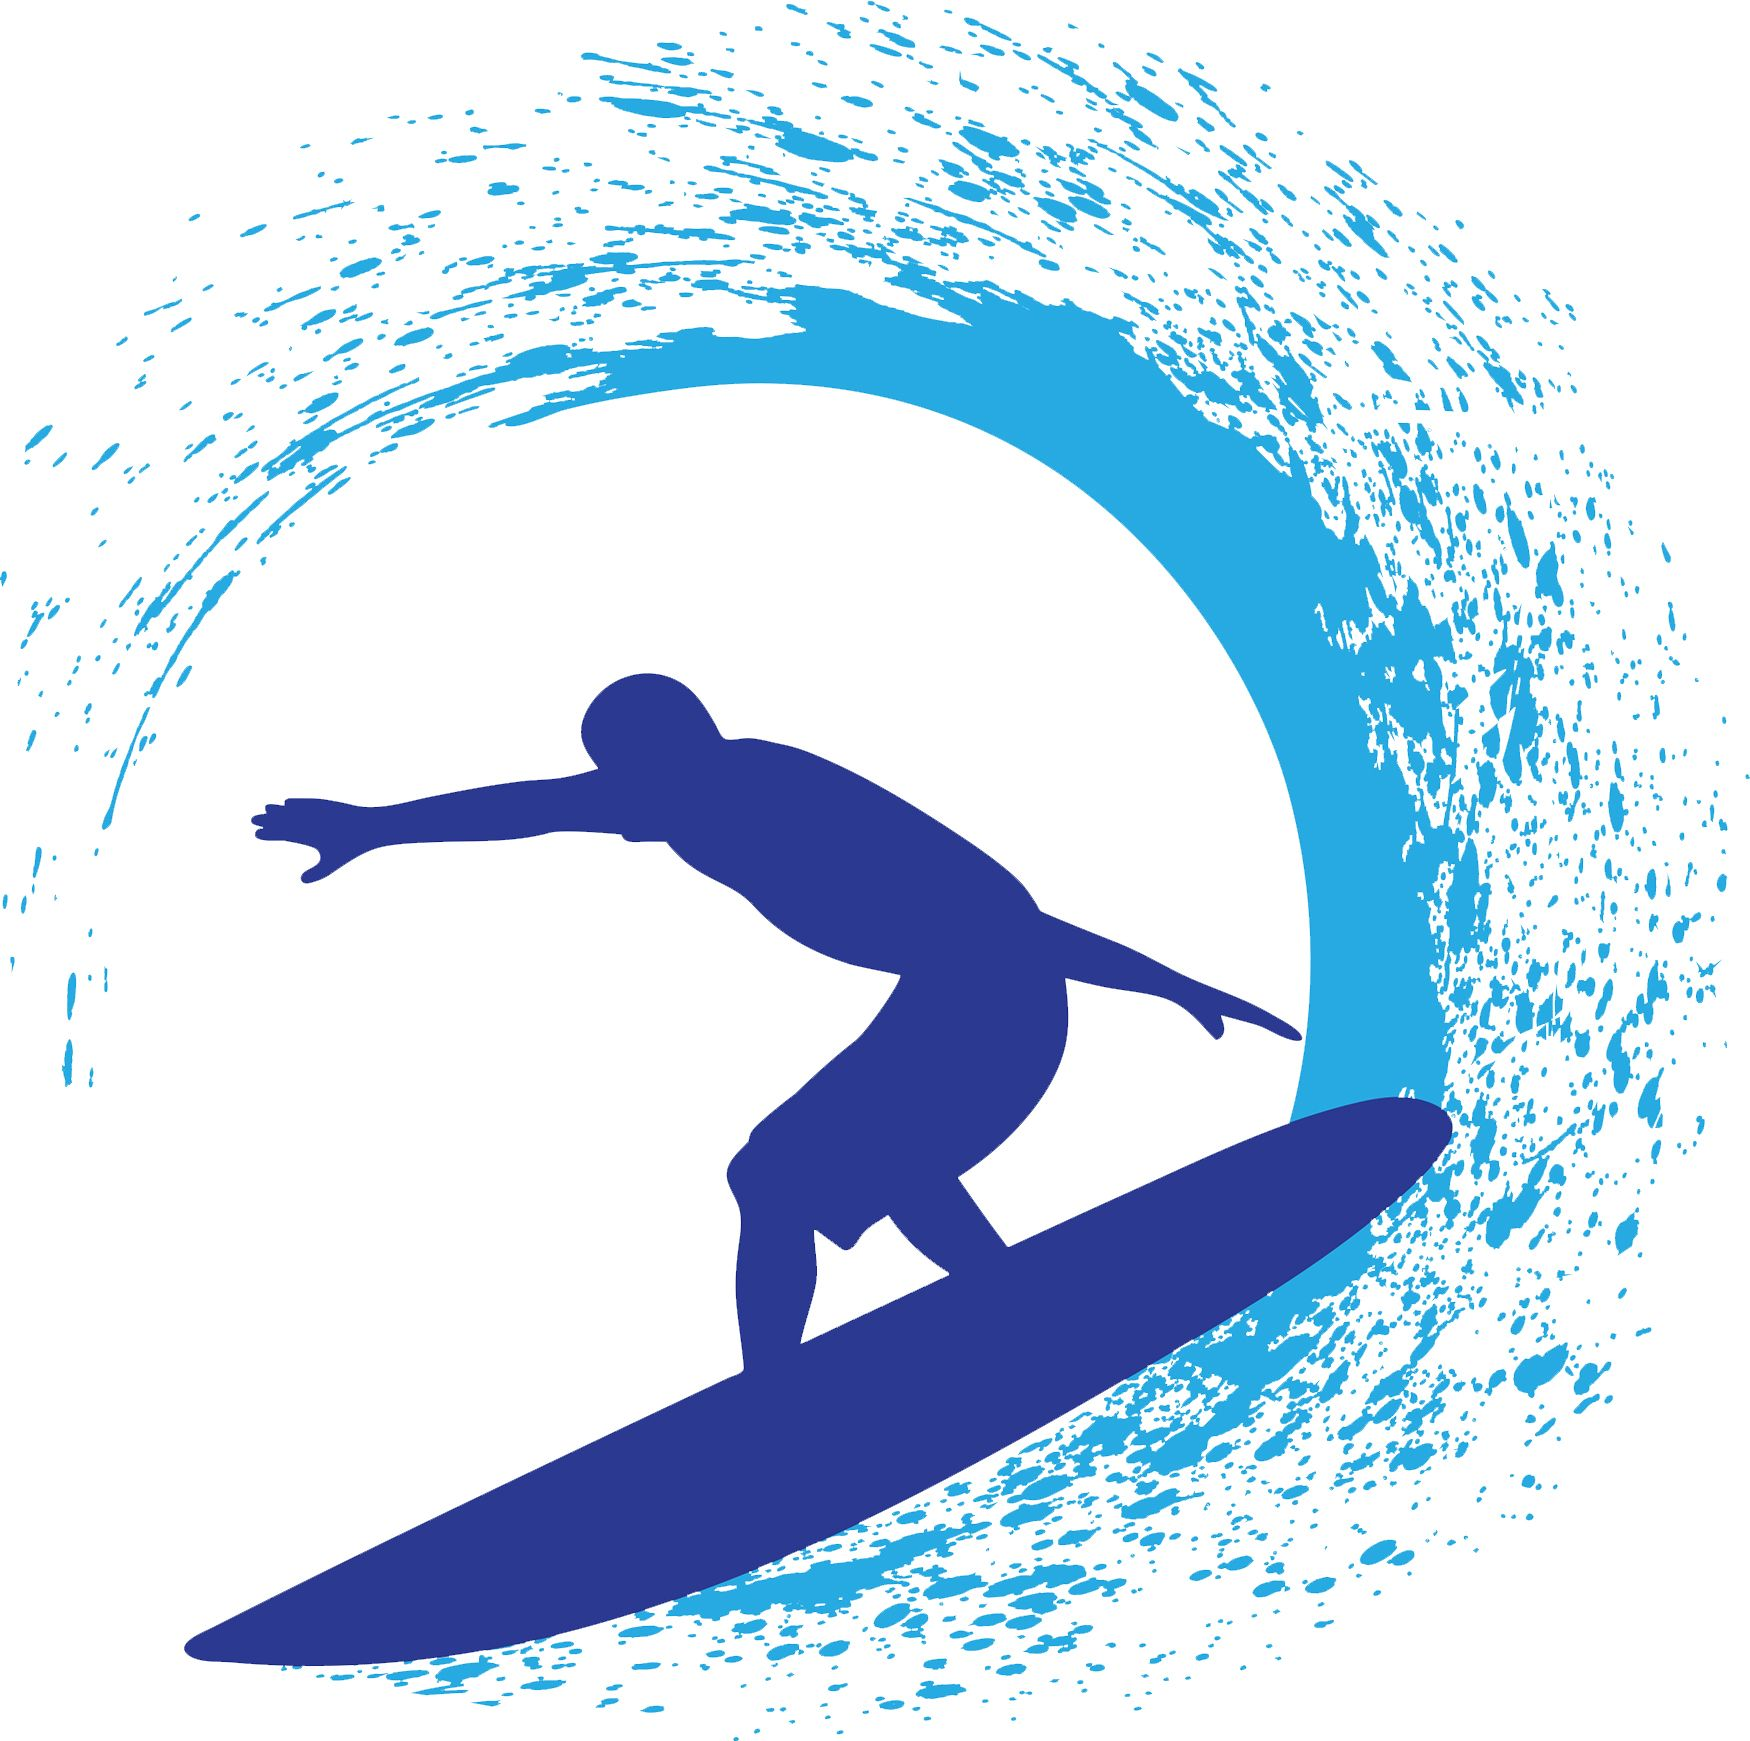 Create surfer designs using. Surfing clipart